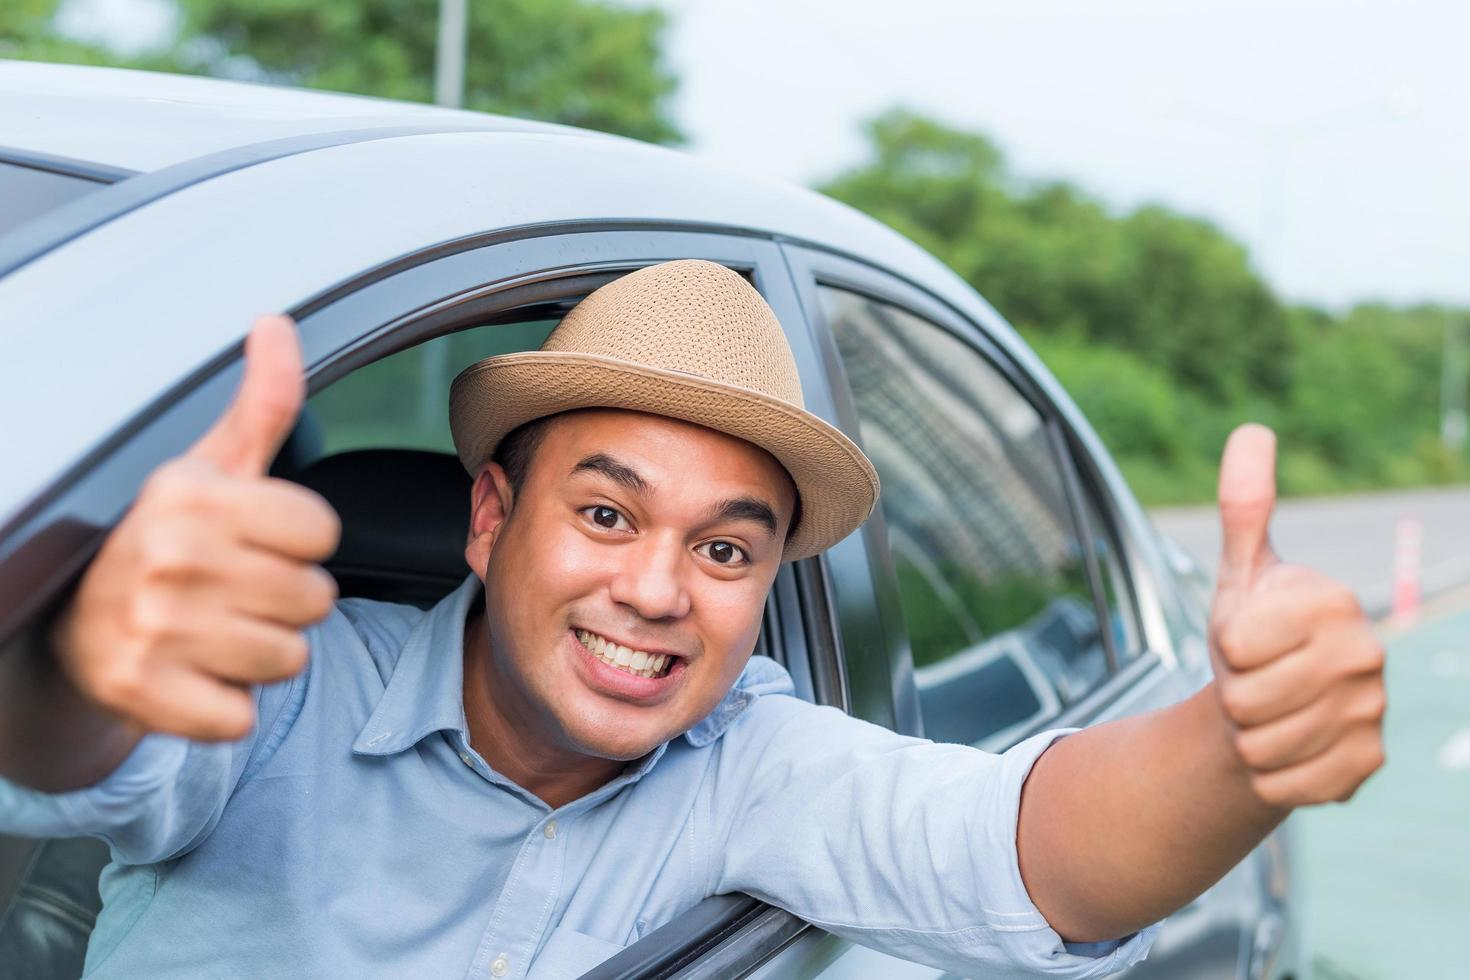 Male driver giving thumbs up photo